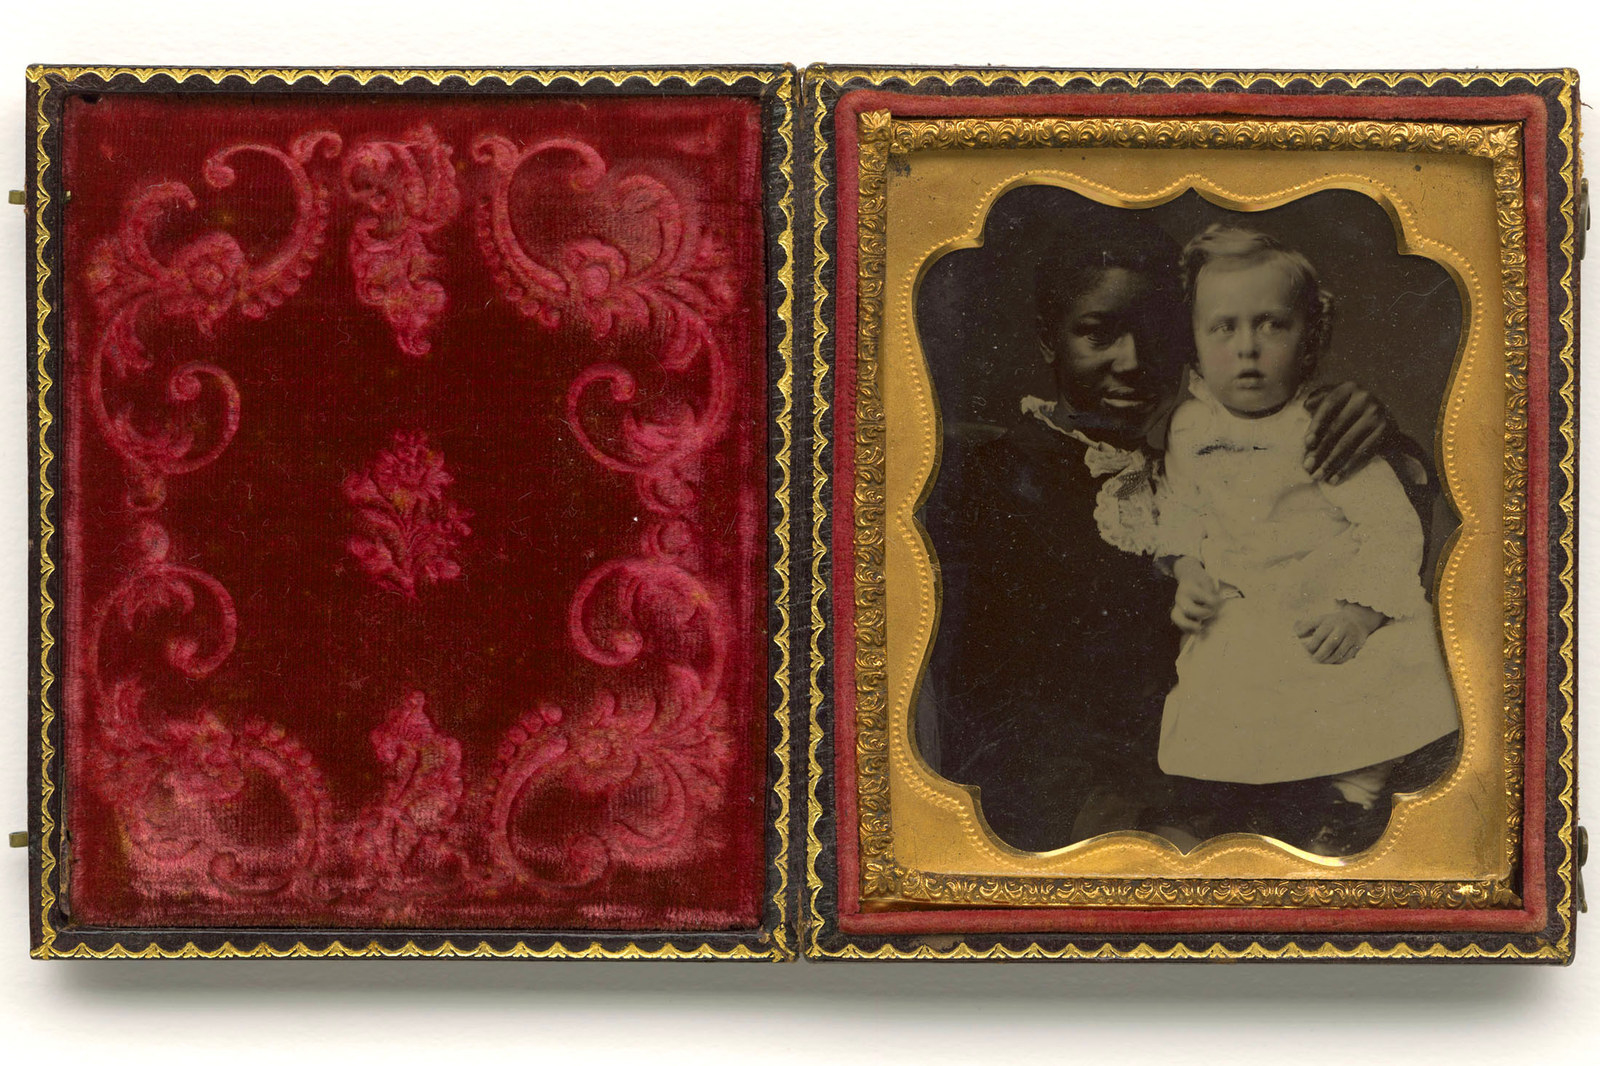 12 Of The Oldest Pictures From Black History In America